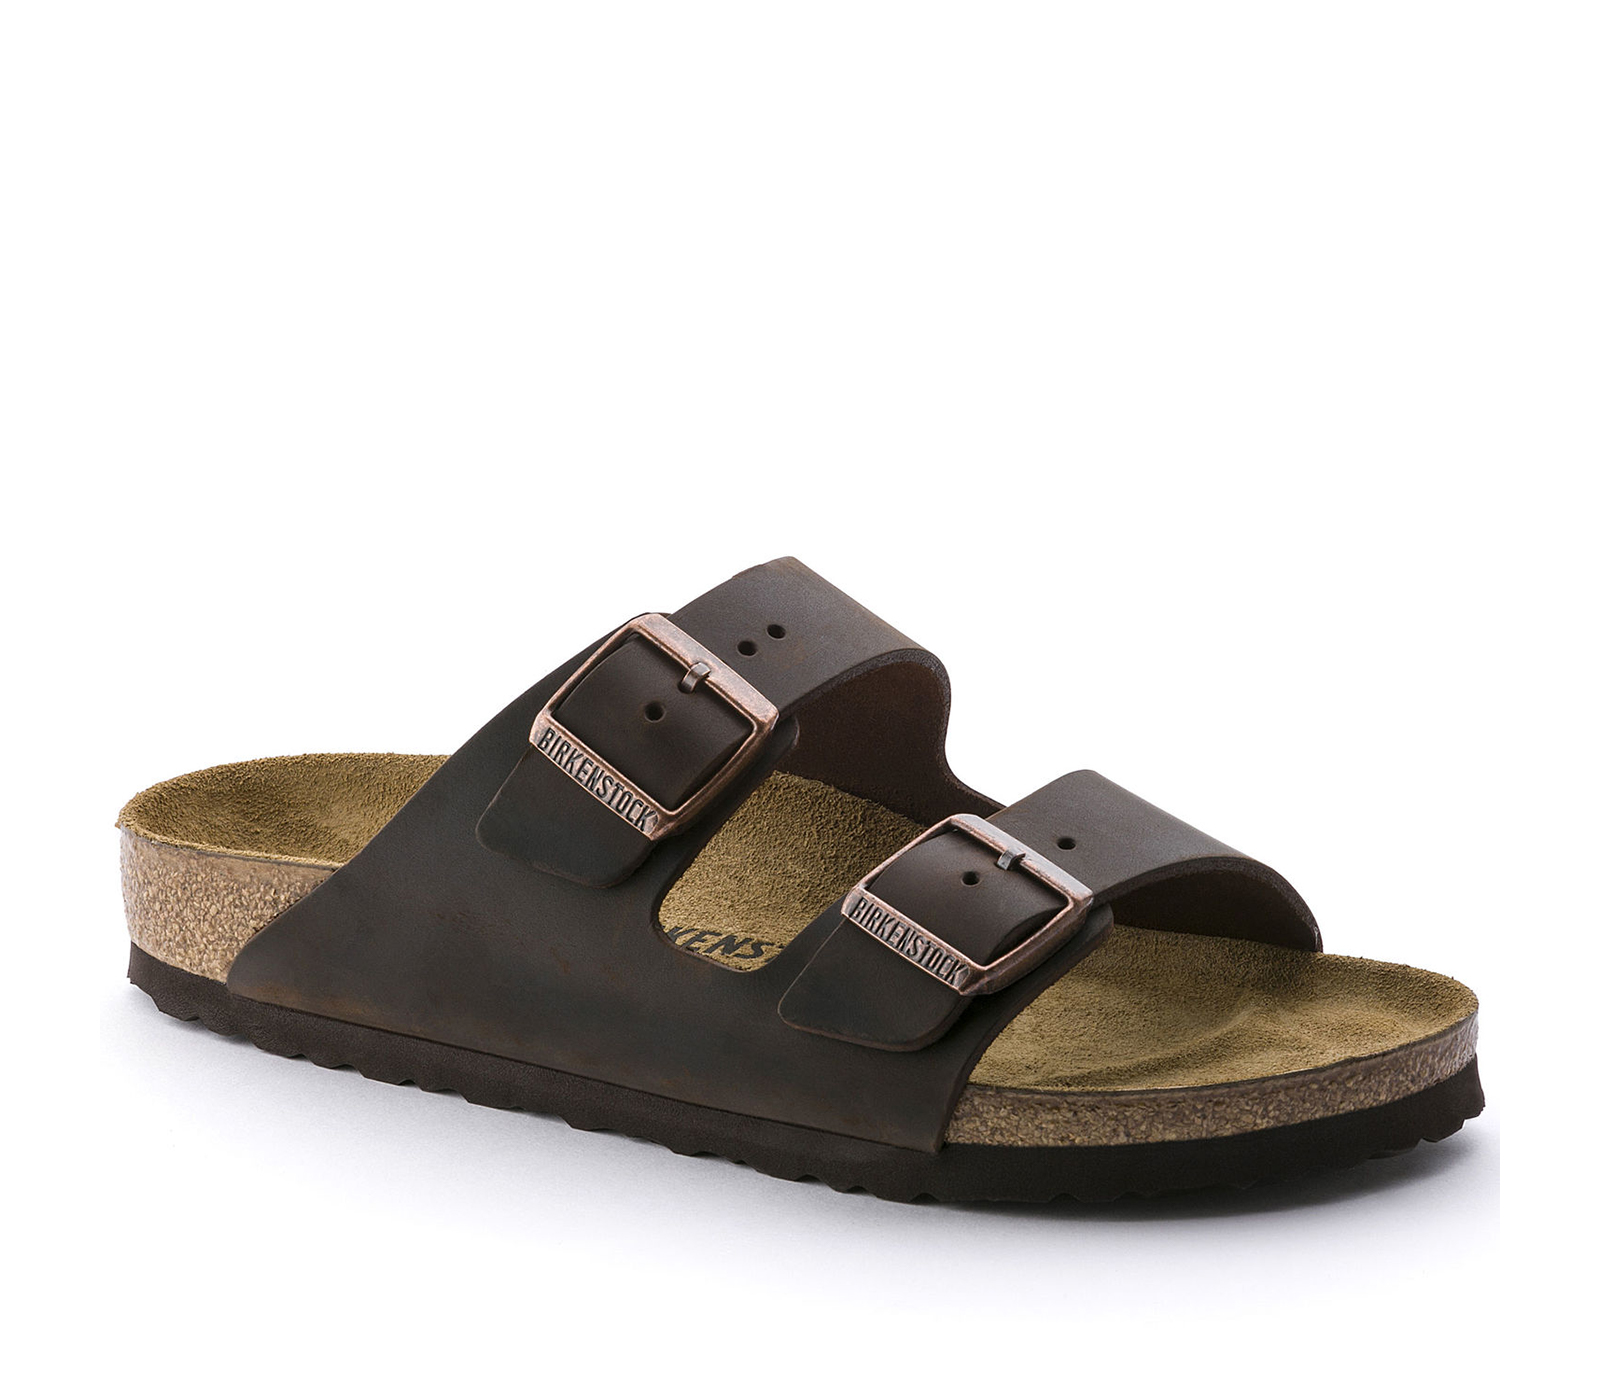 Birkenstock Arizona Leren Slippers